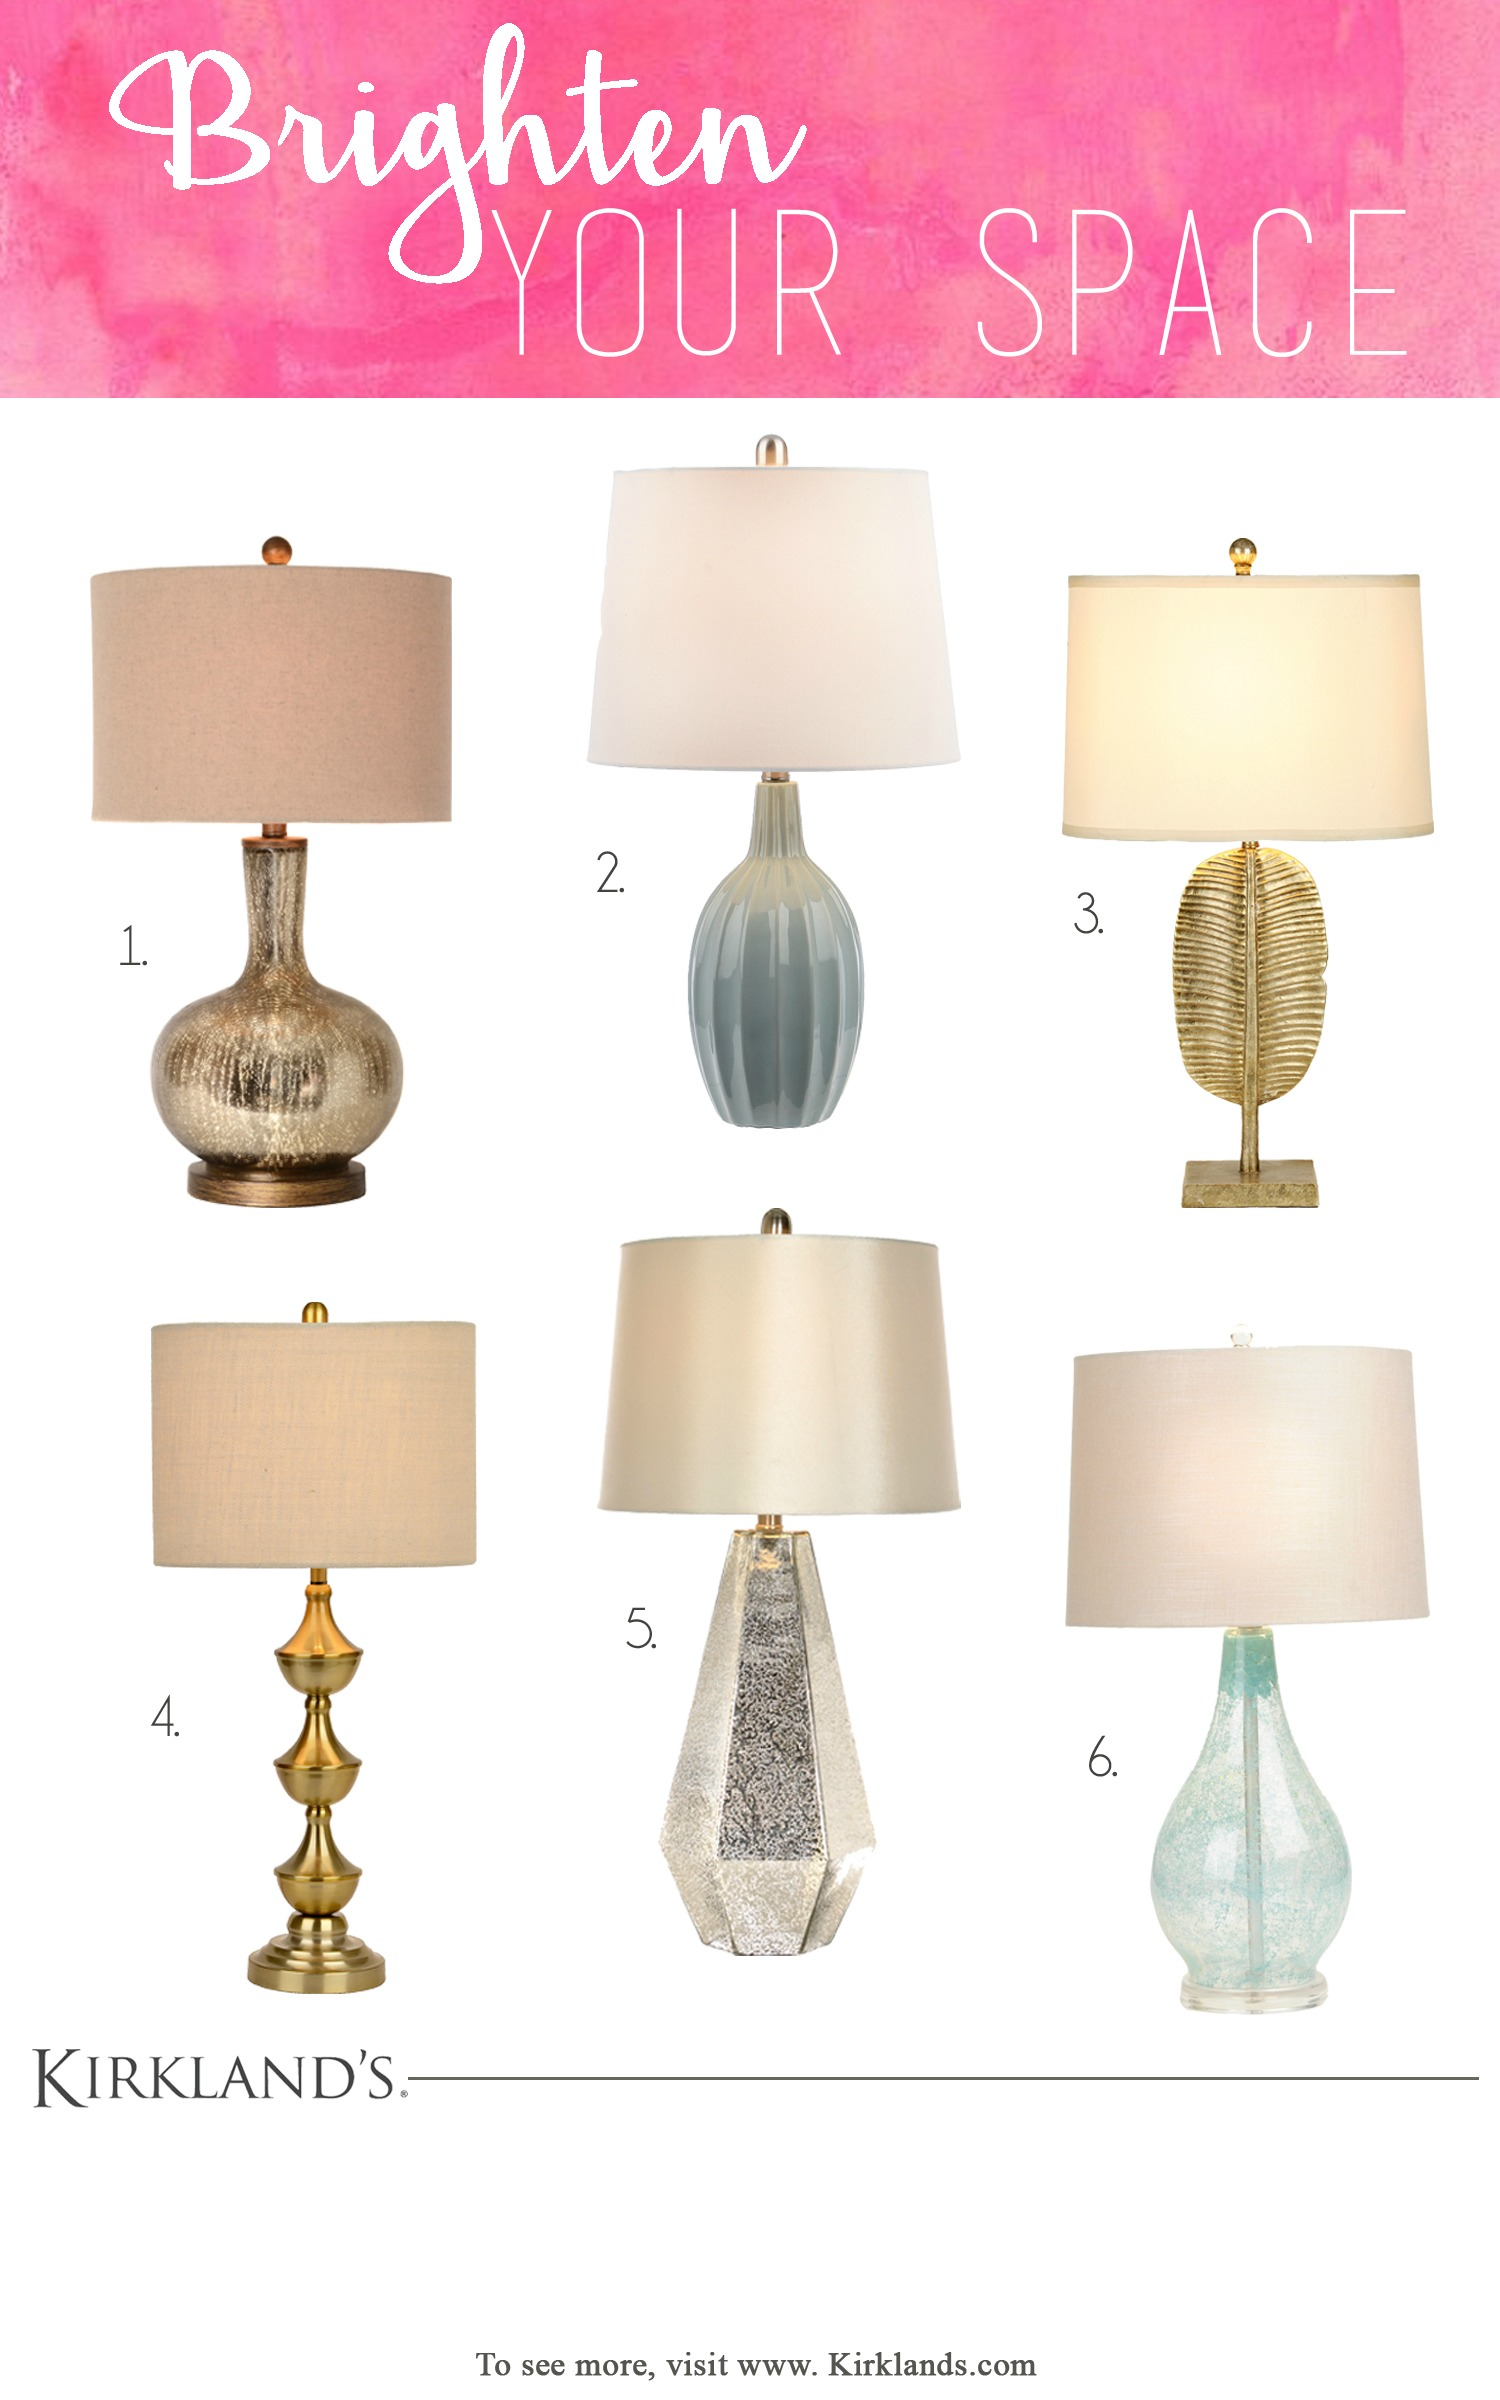 Brighten Your Space with New Lighting. This is a great roundup of lamps.  I think I love them all. Which is your favorite?